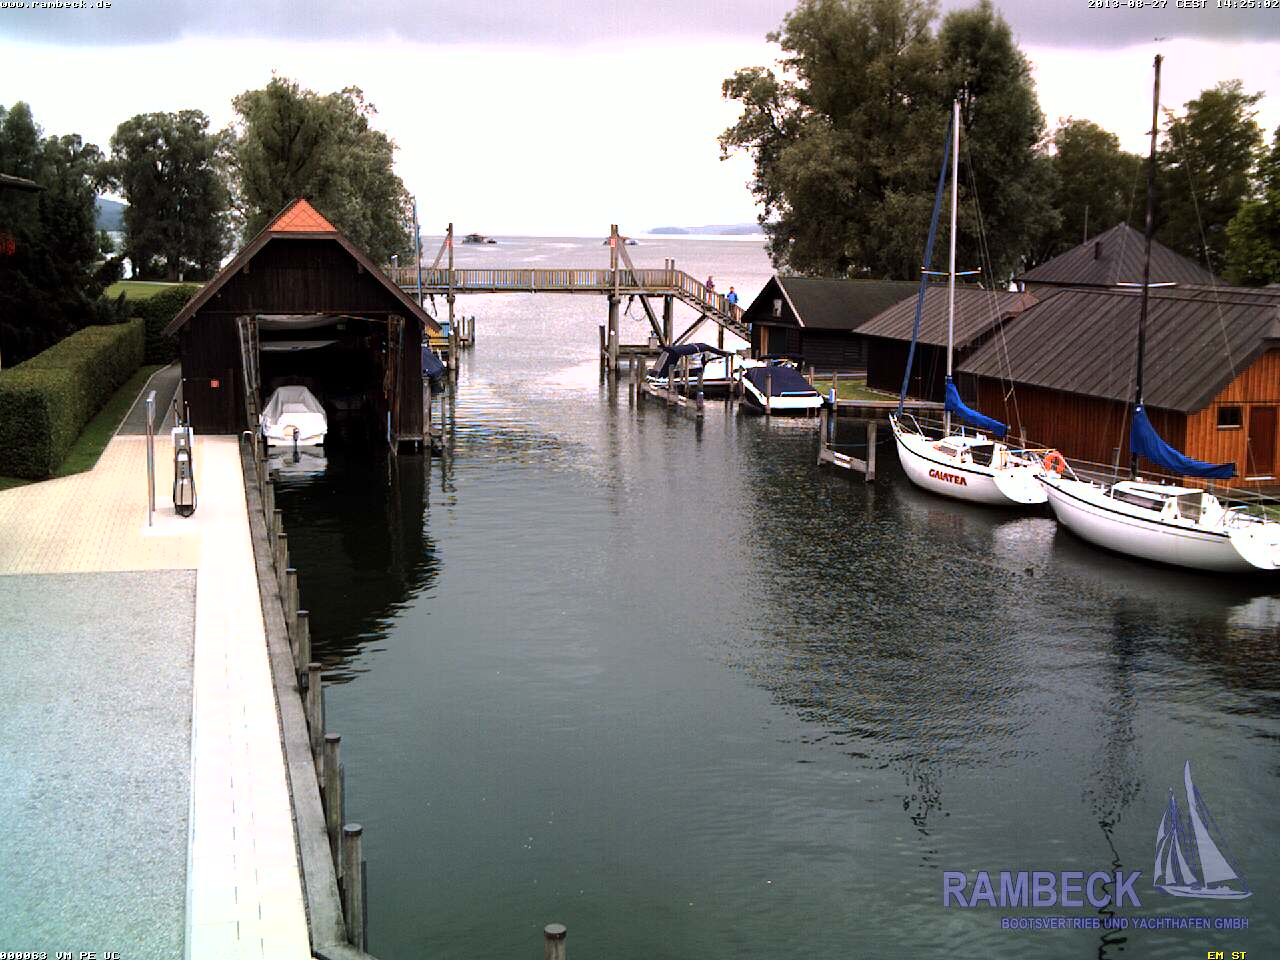 Starnberg Yacht Club Rambeck in the Percha District